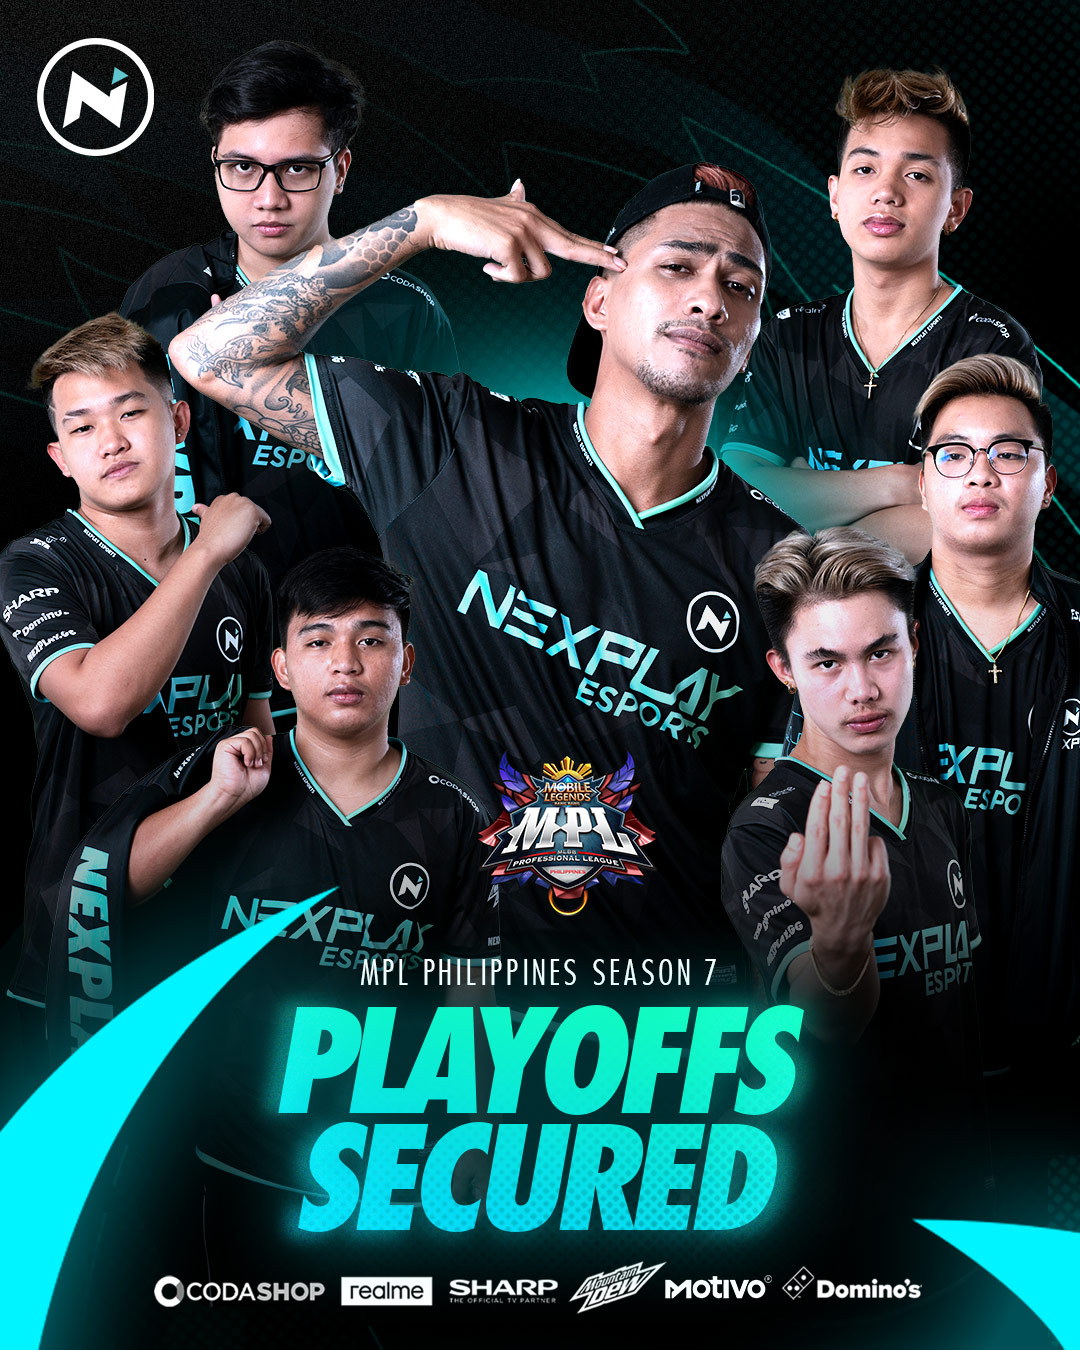 Nexplay Esports team in different poses - playoffs secured